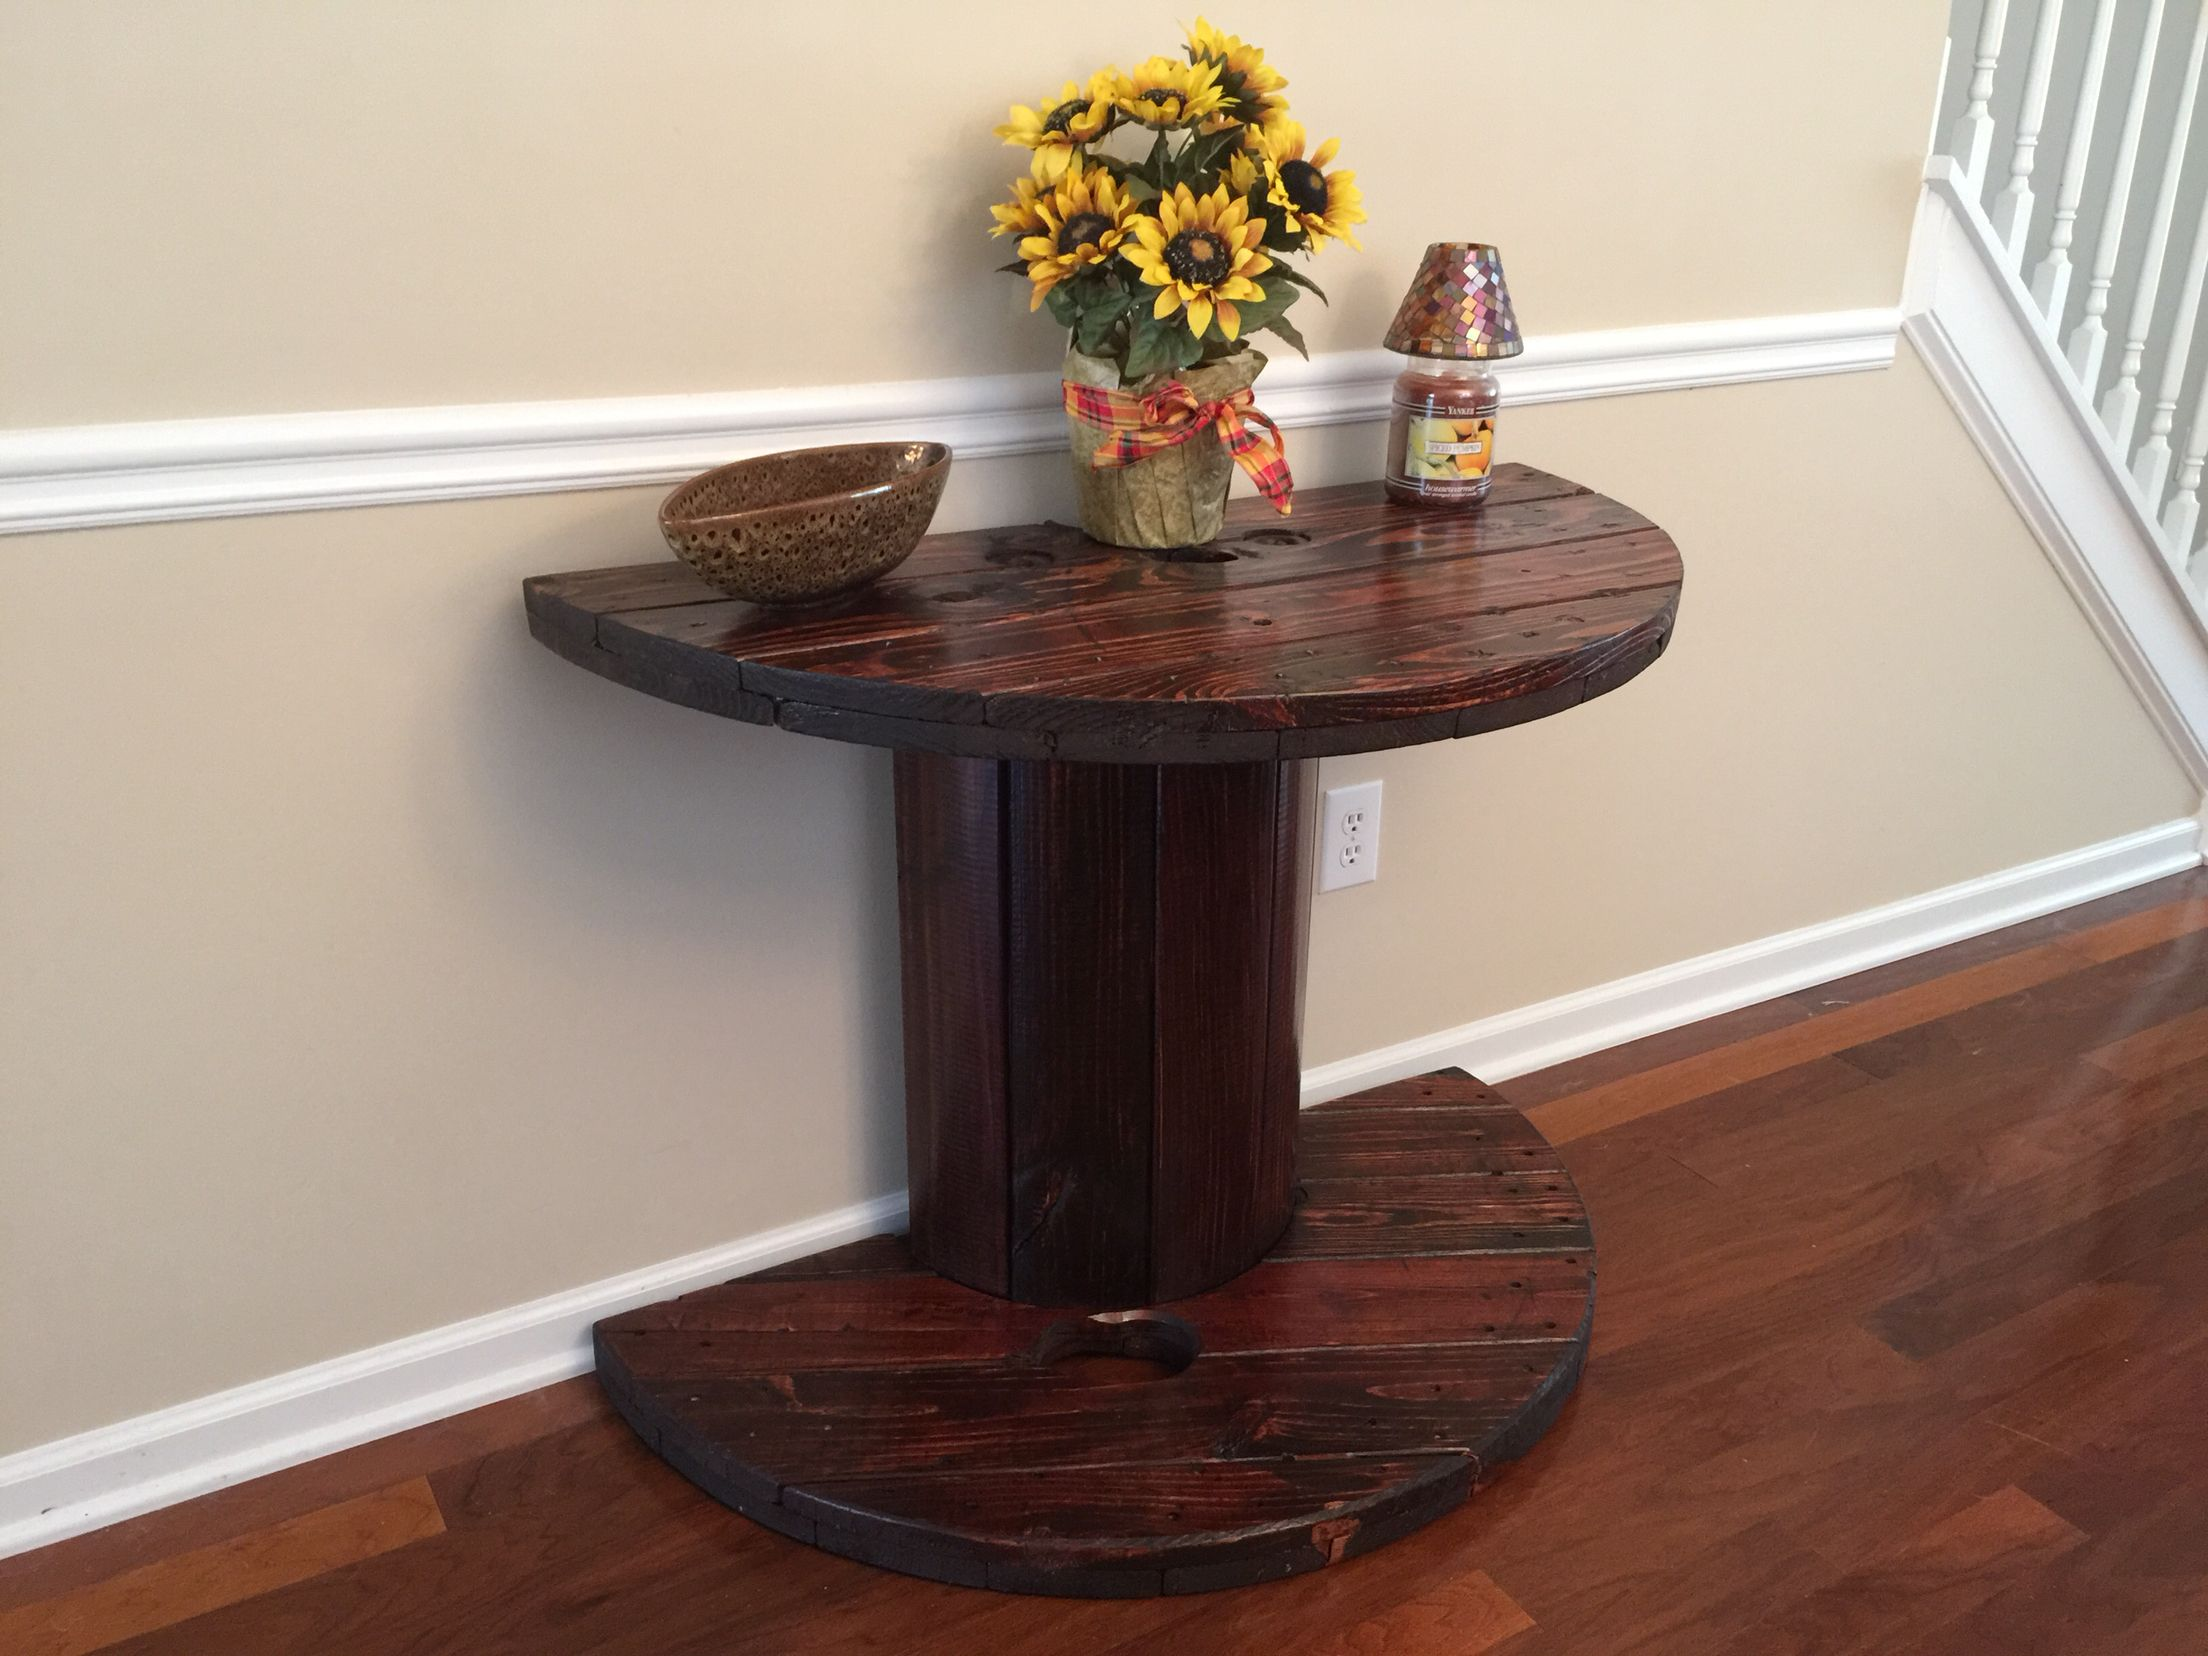 Do It Yourself Home Design: Large Wooden Spool Cut In Half Sanded, Stained And